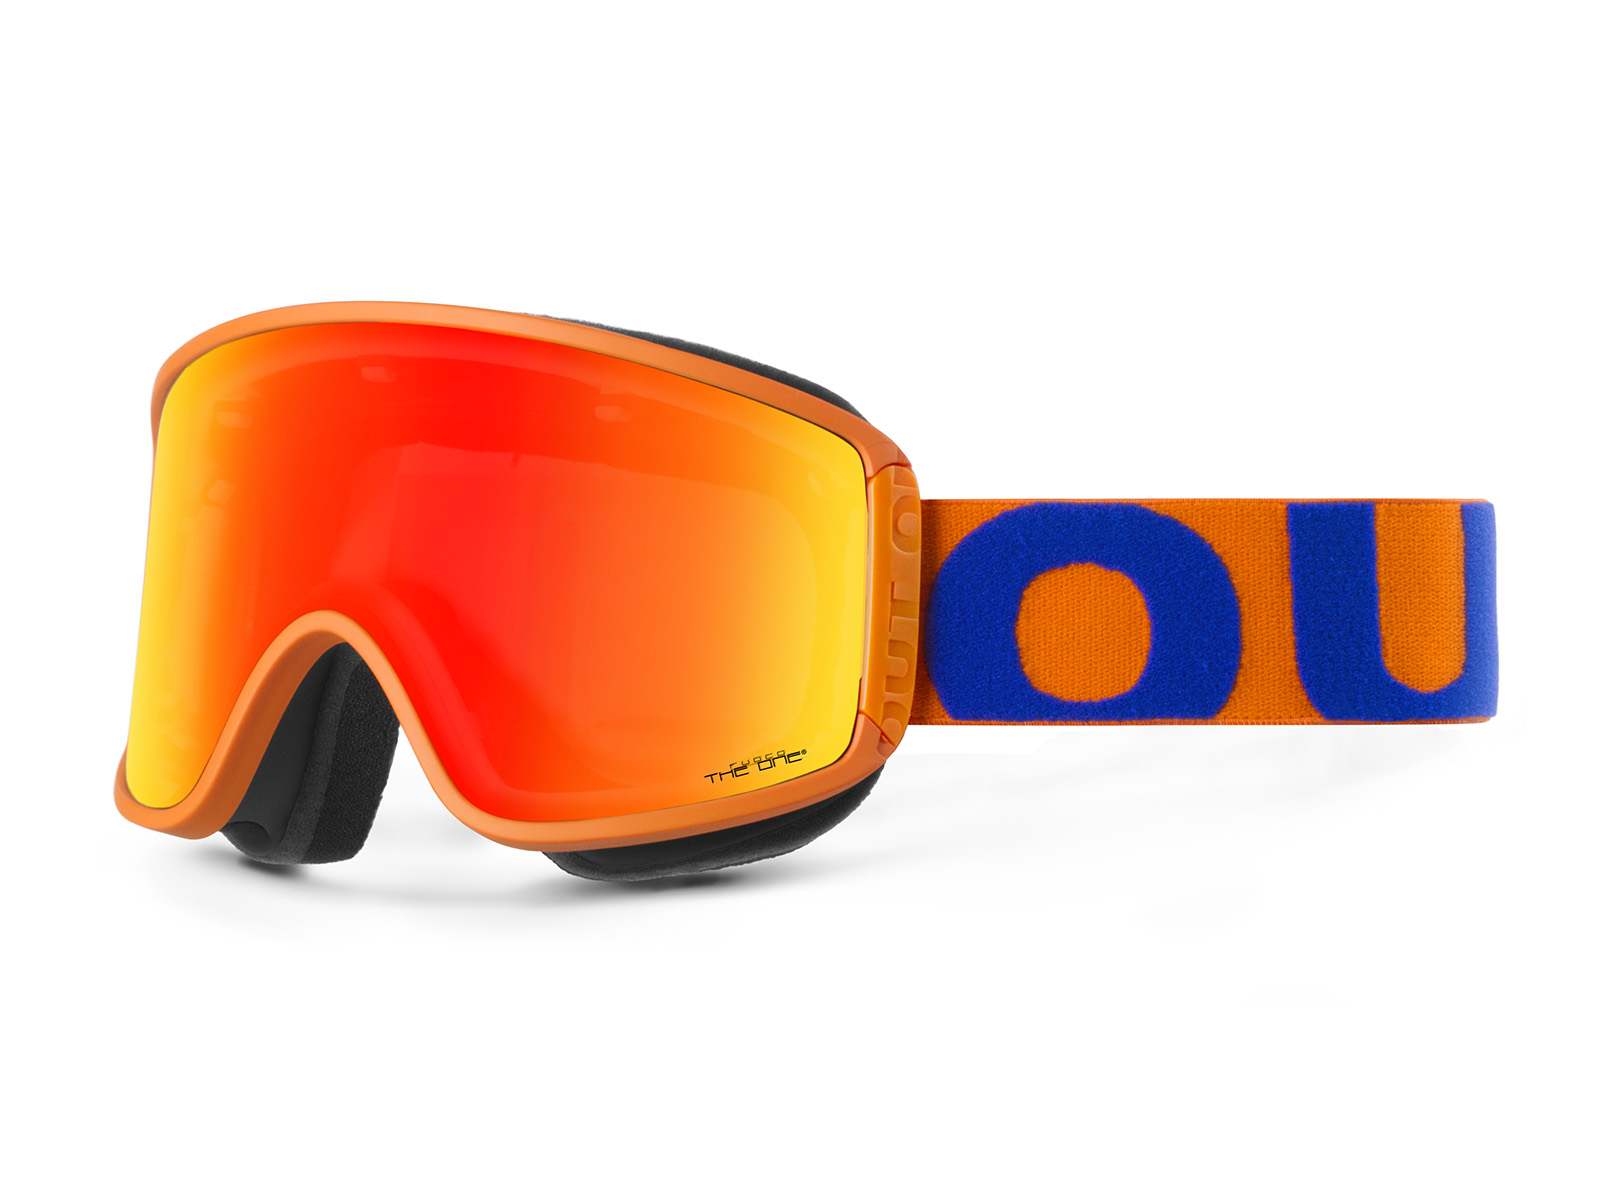 SHIFT BLUE ORANGE THE ONE FUOCO GOGGLE